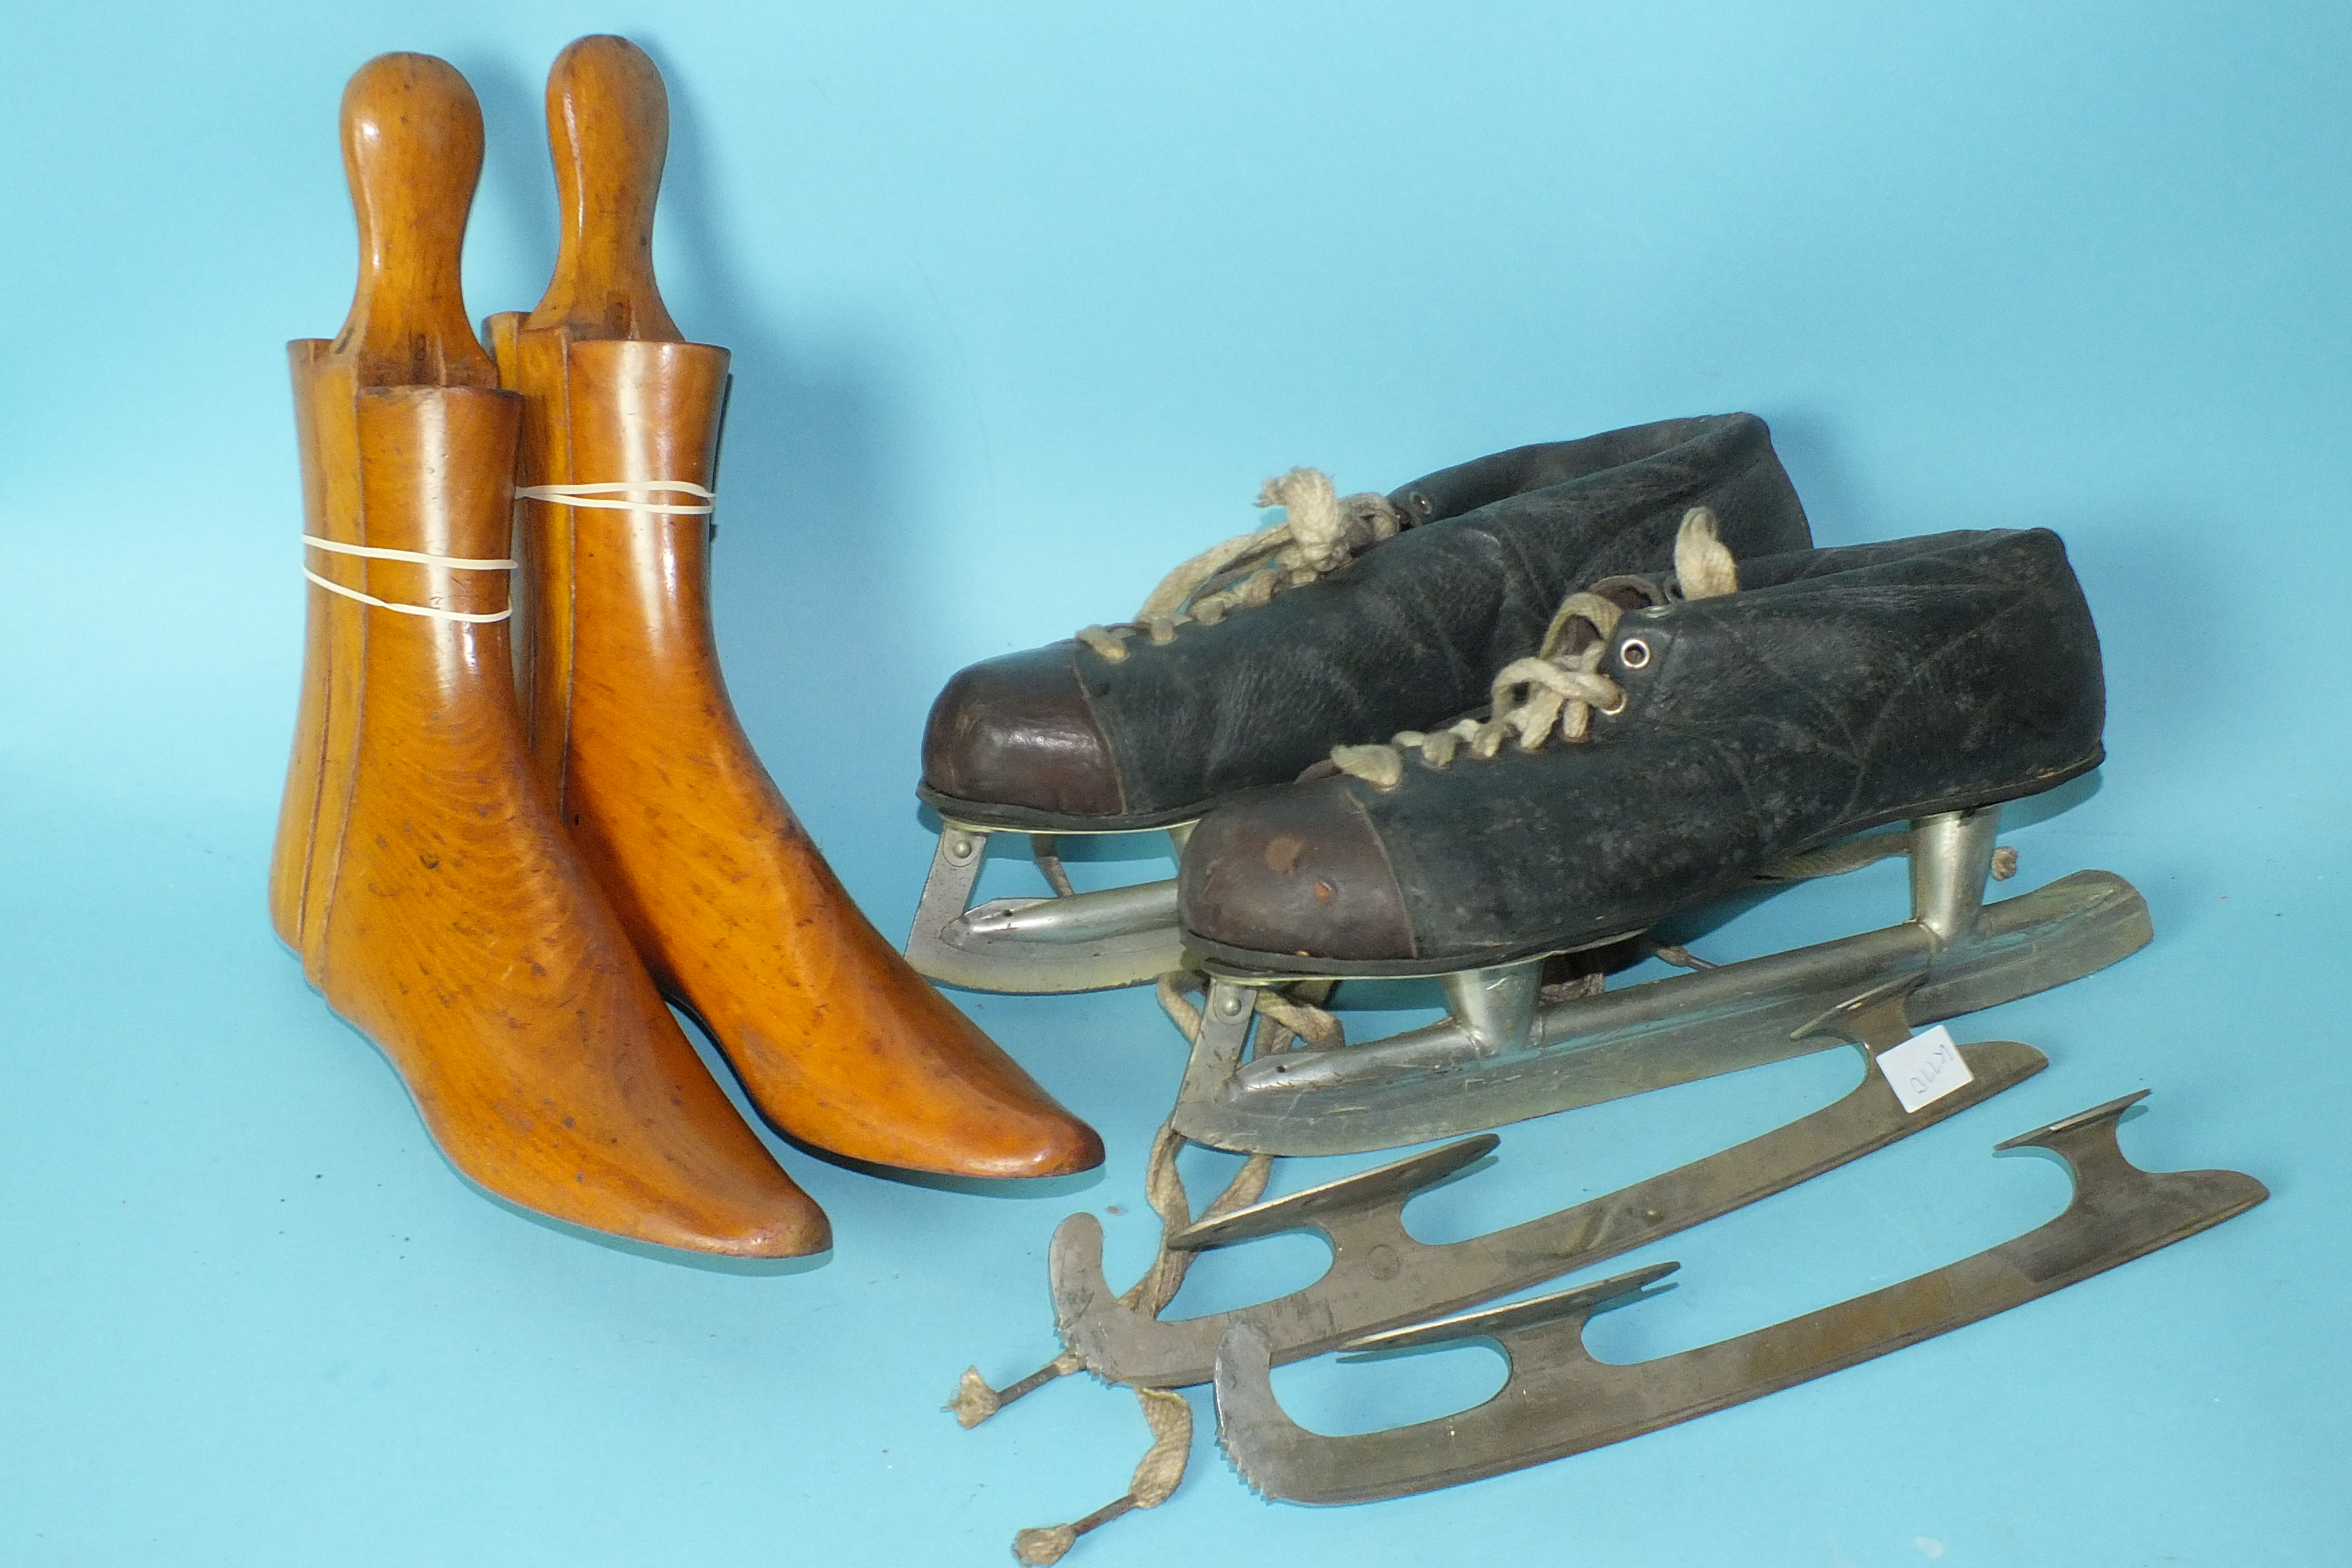 Lot 563 - A pair of wooden shoe lasts and a pair of Canadian ice skates with spare blades, boxed.